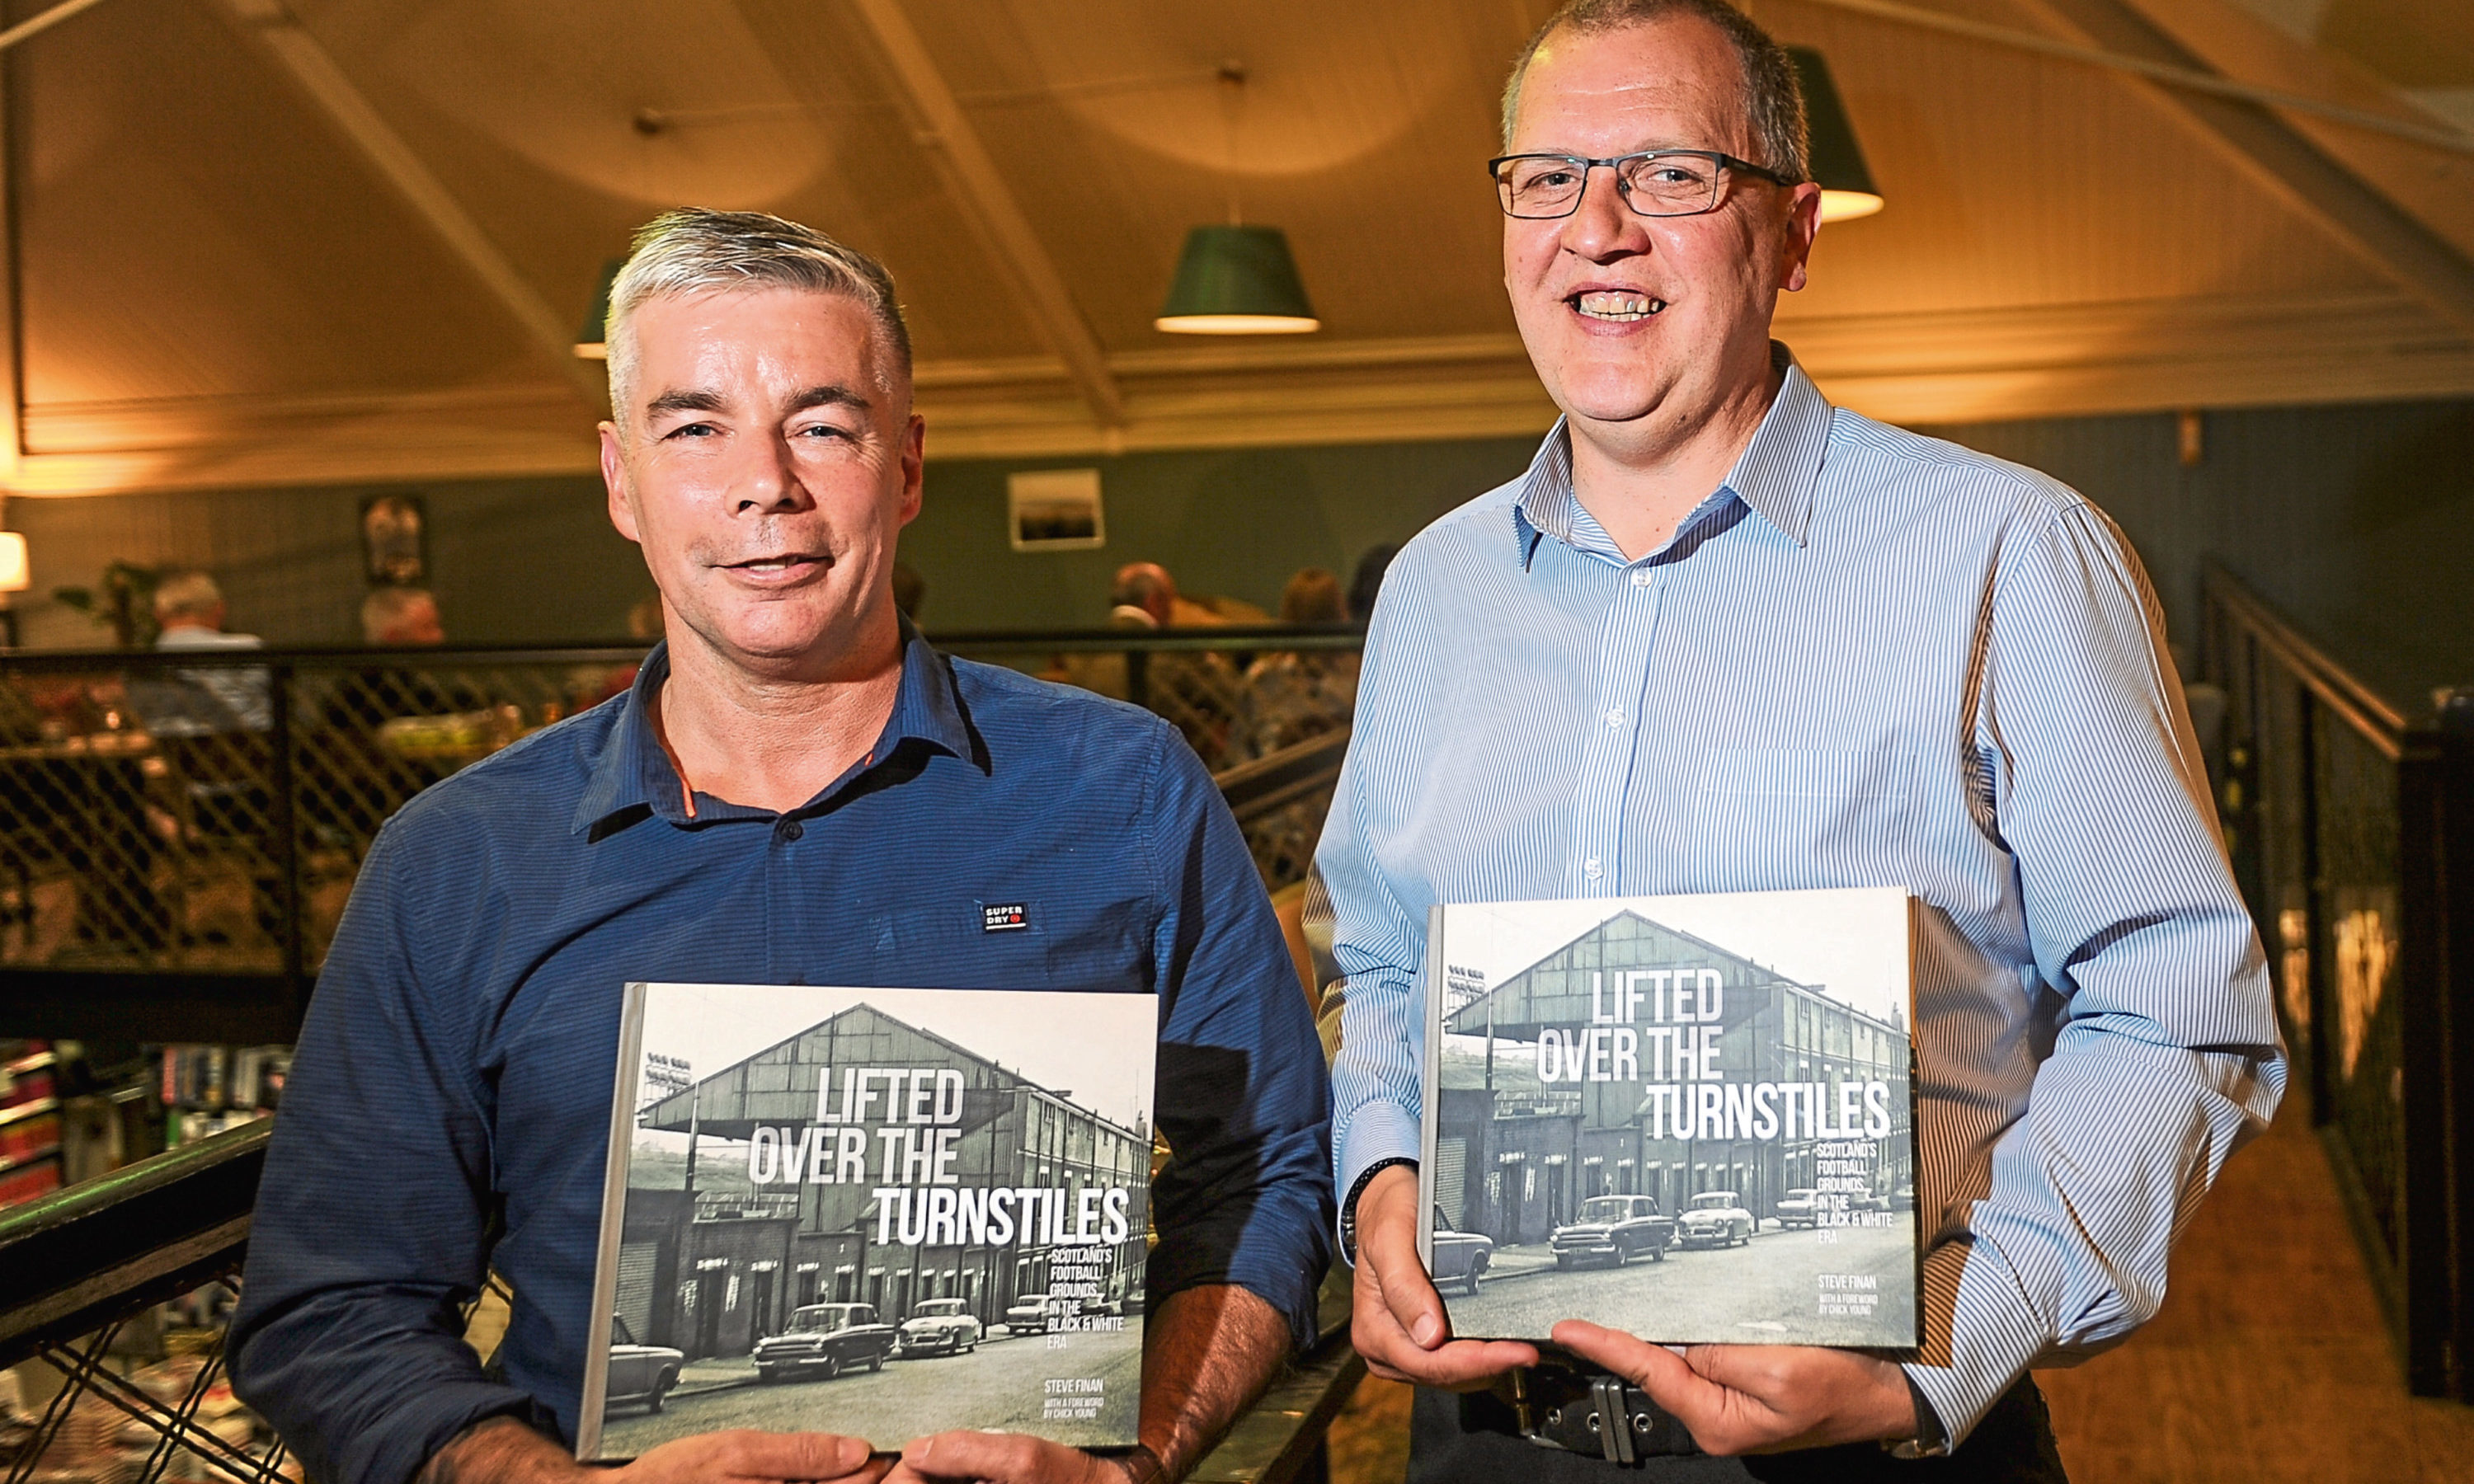 Courier News - Dundee, Stefan Morkis story; CR0001605 Launch of new DC Thomson book Lifted Over the Turnstiles. Picture shows; l to r - Steve Finan (author) and Tom Duthie, Waterstones, Commercial Street, Dundee, Tuesday 29th May 2018